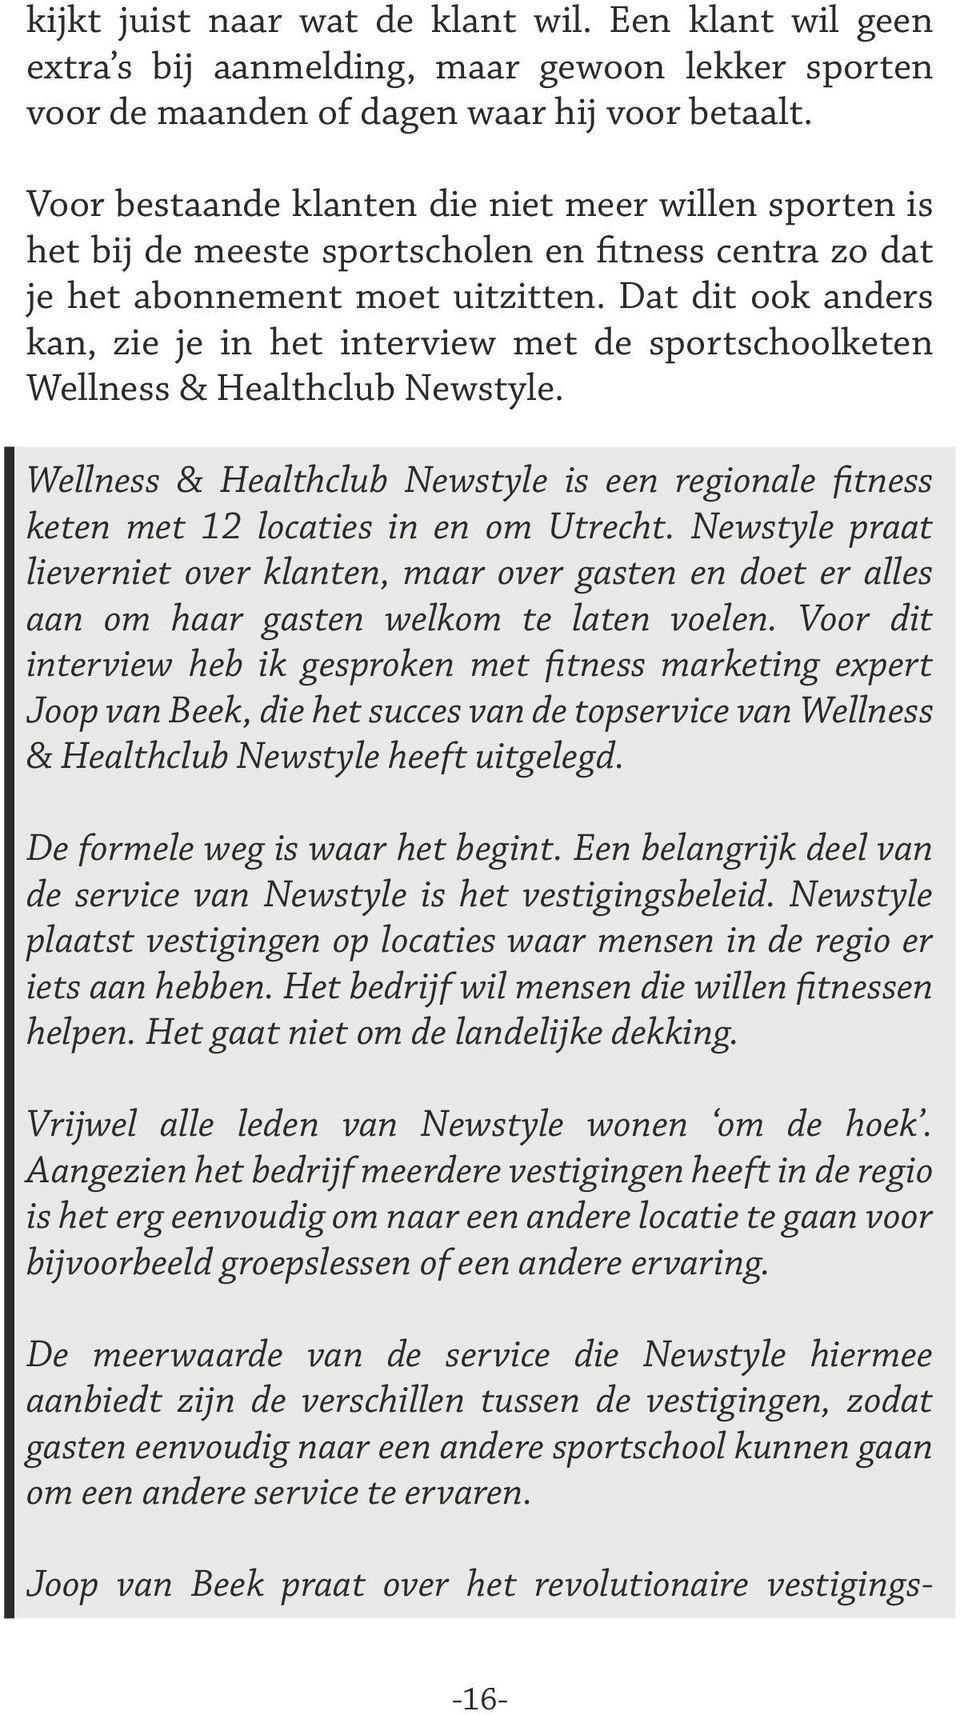 Dat dit ook anders kan, zie je in het interview met de sportschoolketen Wellness & Healthclub Newstyle. Wellness & Healthclub Newstyle is een regionale fitness keten met 12 locaties in en om Utrecht.